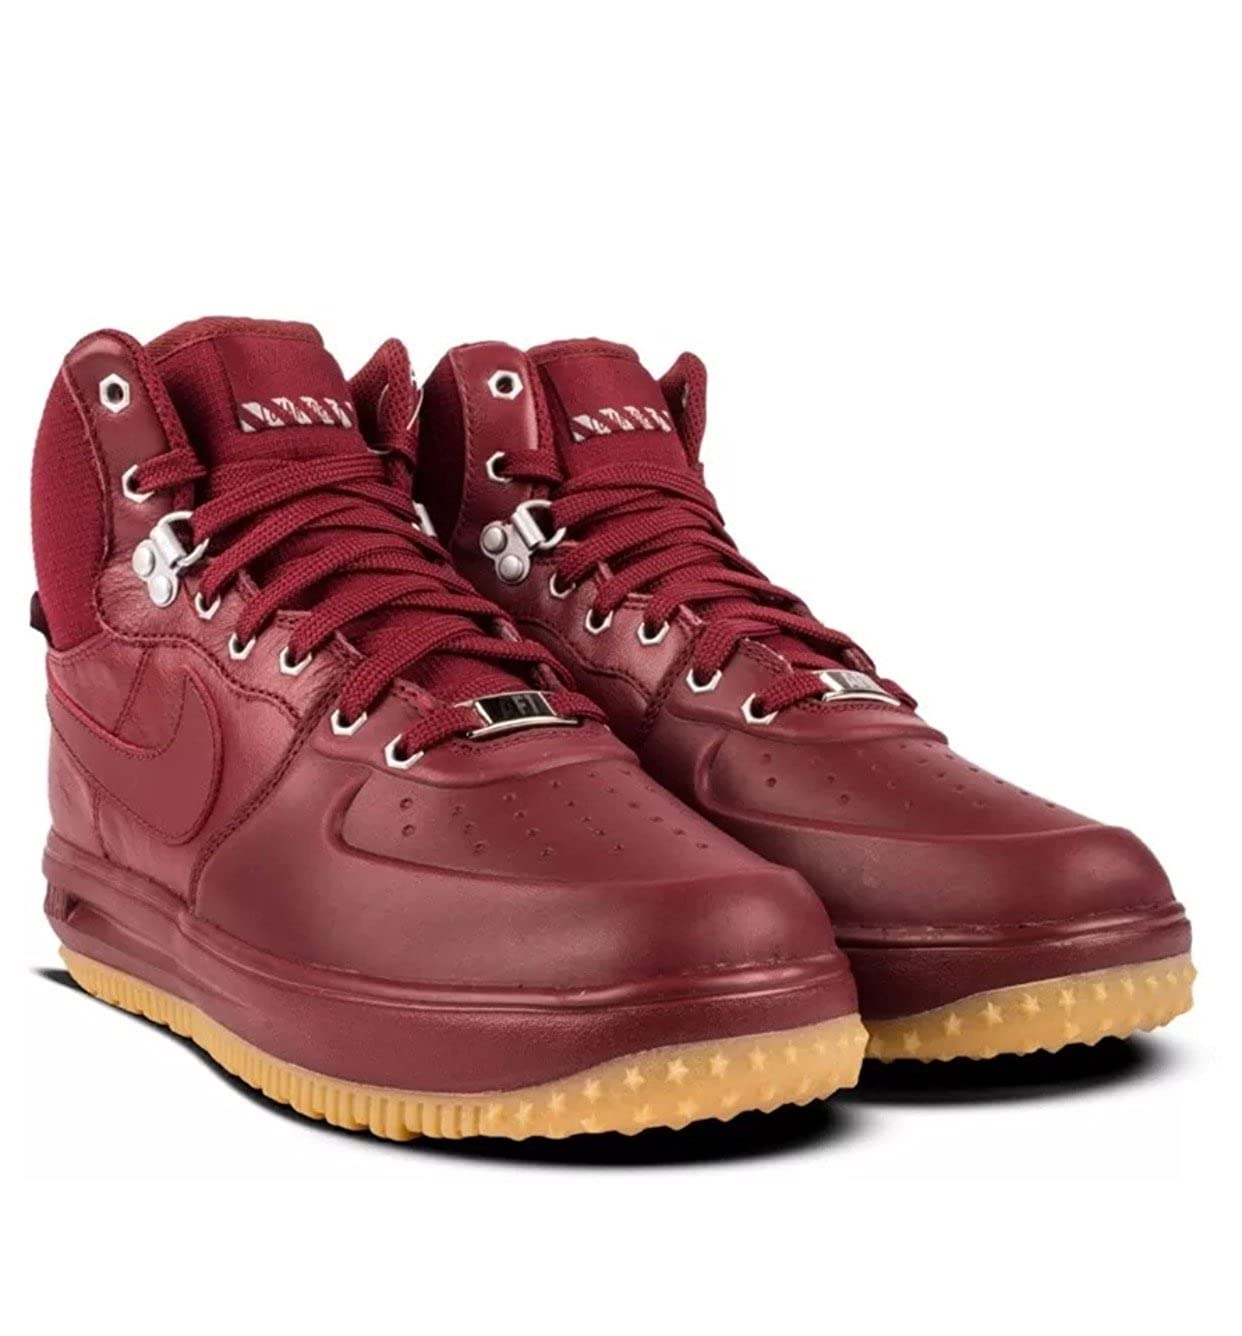 wholesale dealer 0a913 301c0 Amazon.com   Nike Lunar Force 1 Sneakerboot Team Red Team Red (GS) (7 M US  Big Kid)   Basketball